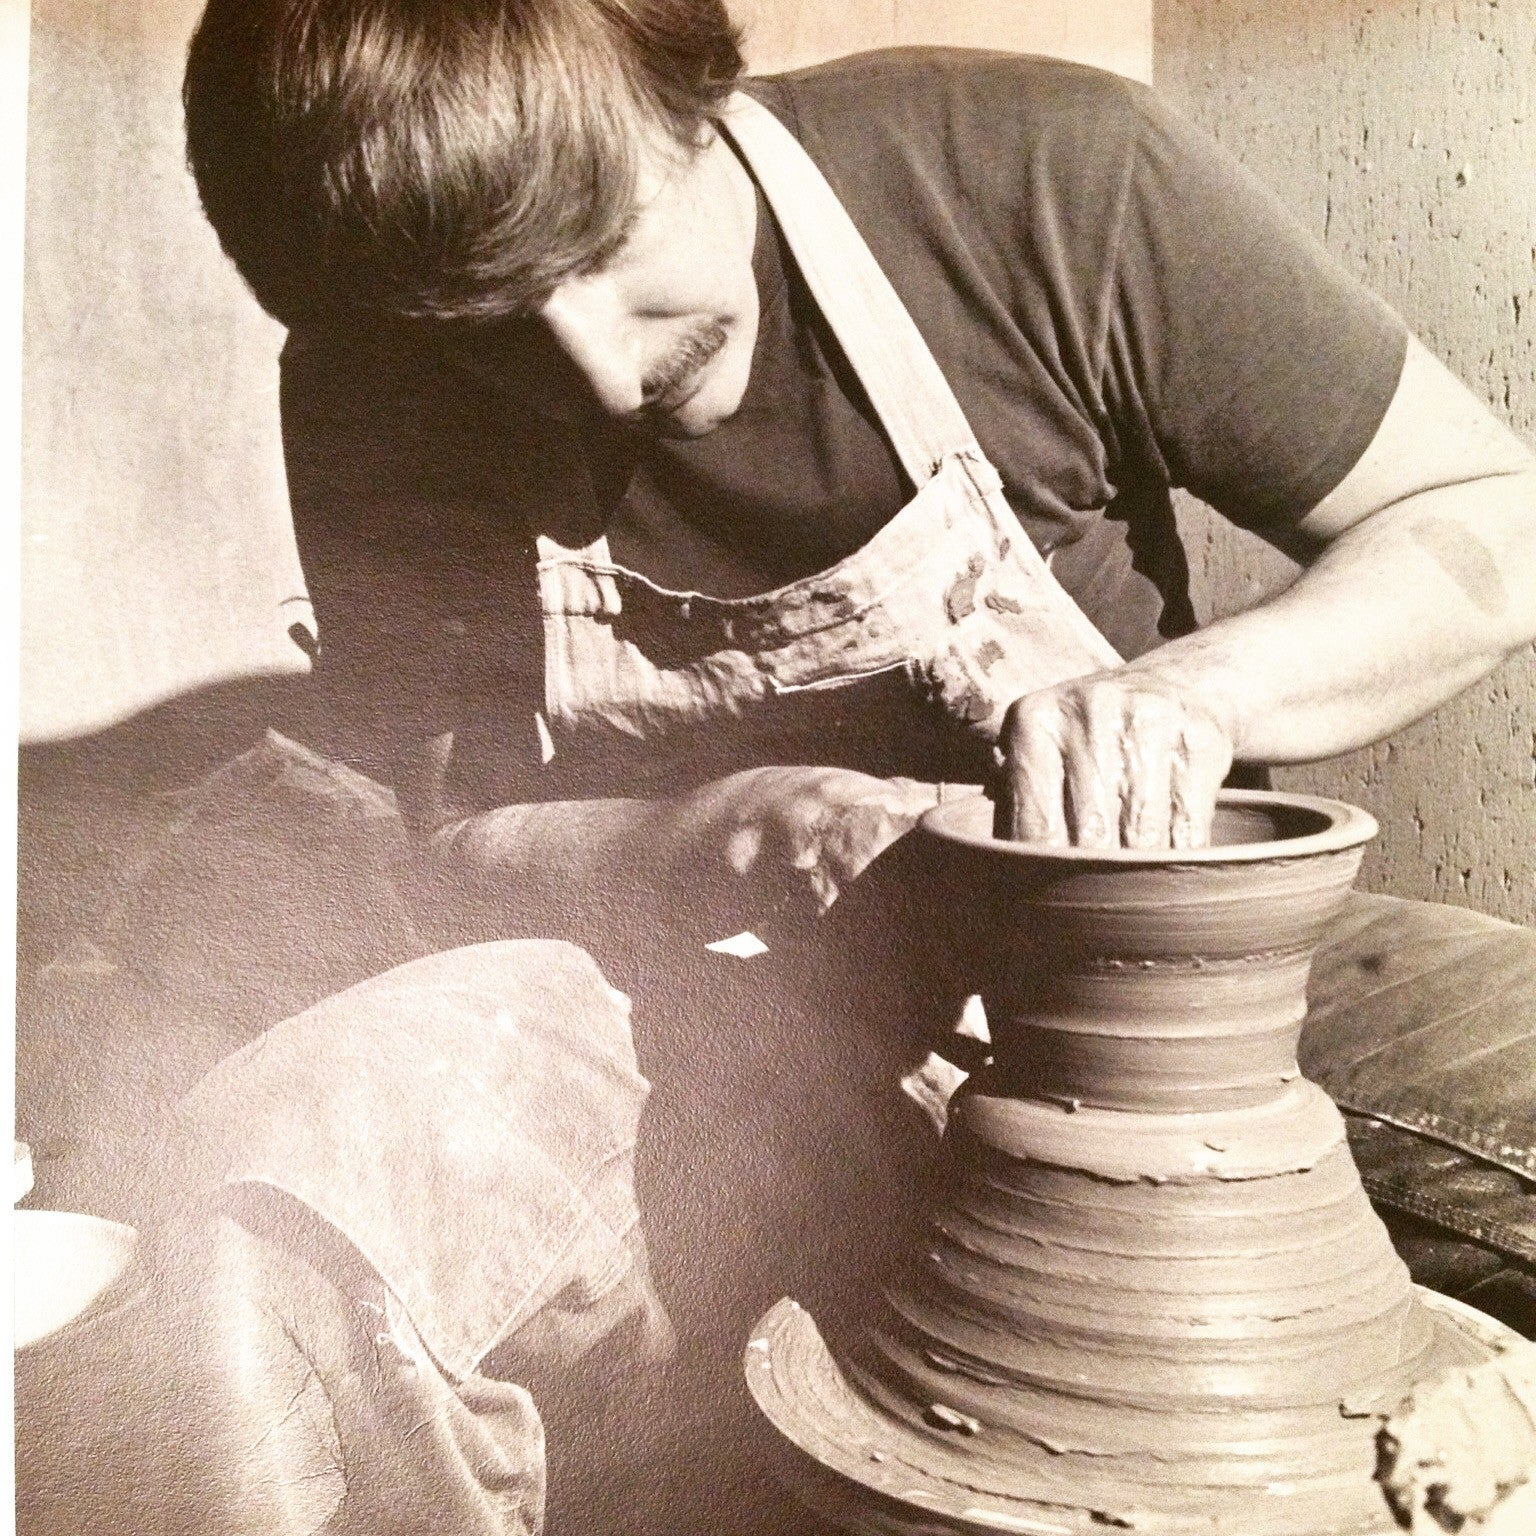 John Dietrich throwing on the potters wheel